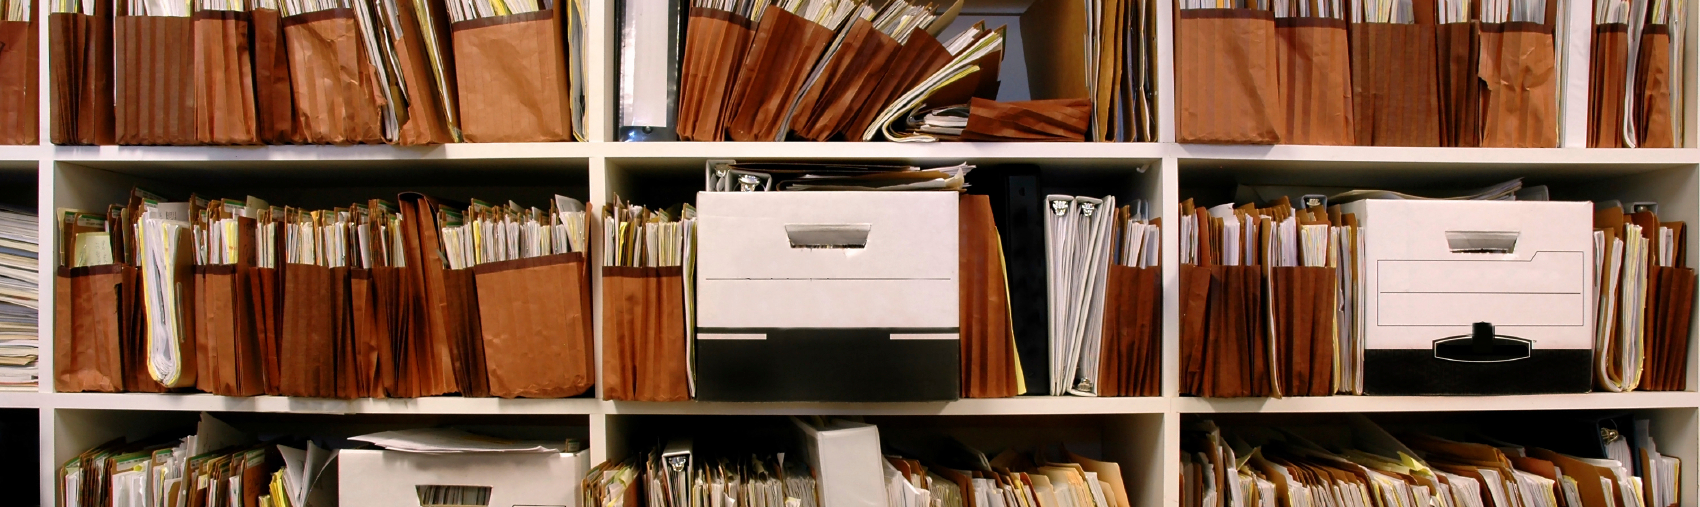 Shelves of documents